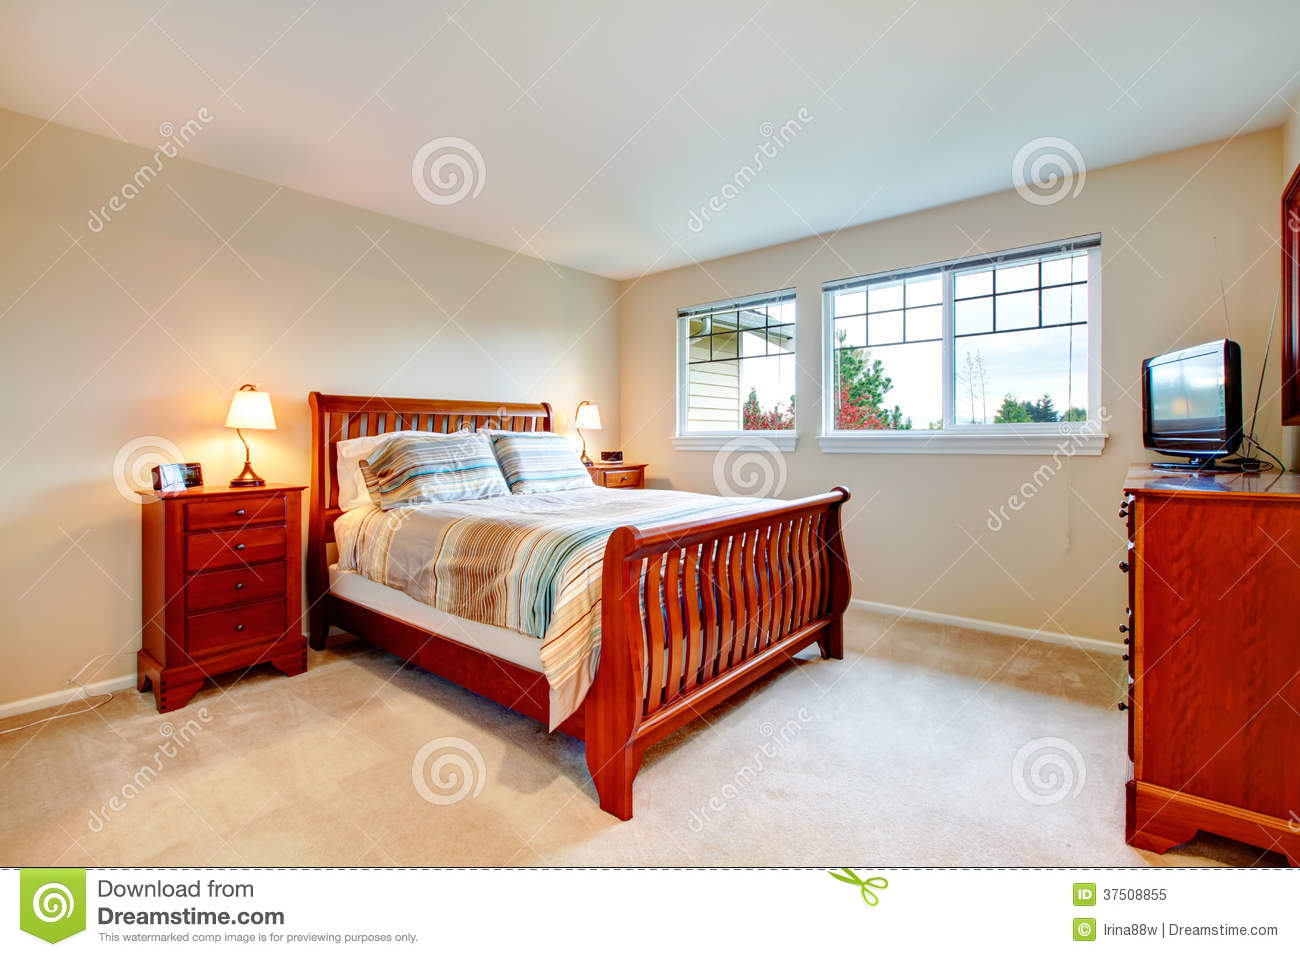 Warm Colors Bedroom With Wood Furniture Stock Image - Image ...